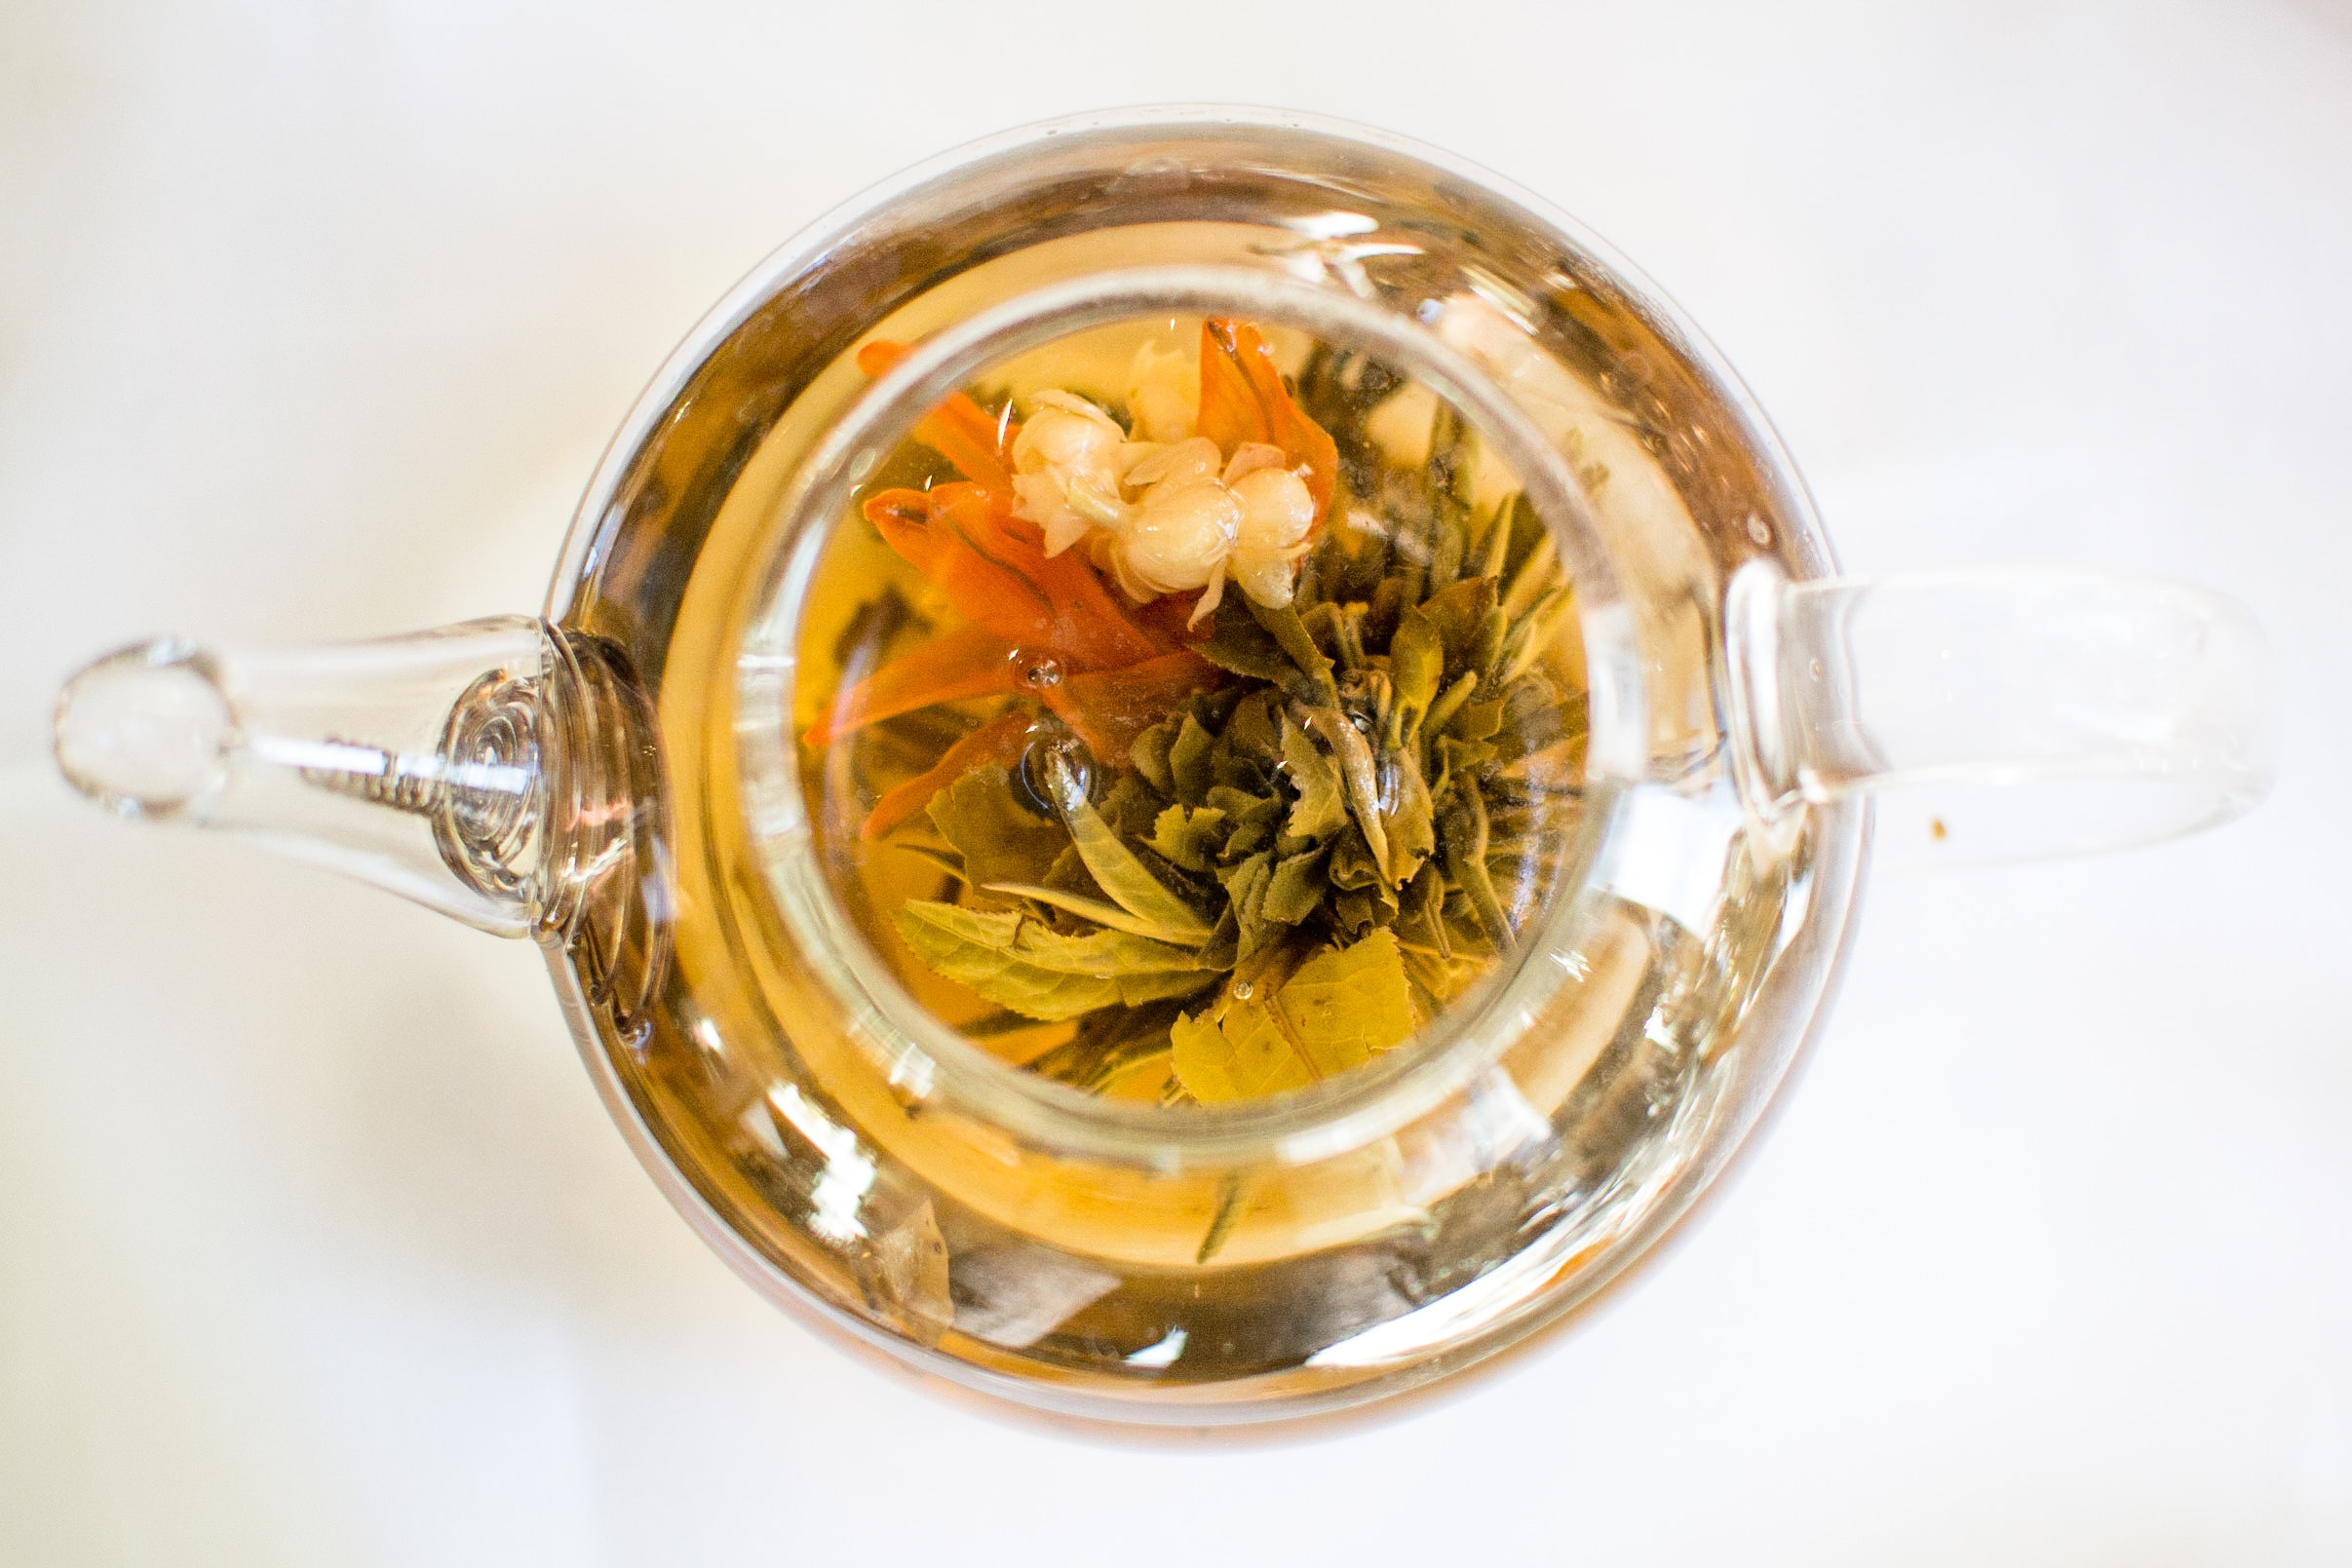 top view photo of green leafed plants inside glass kettle